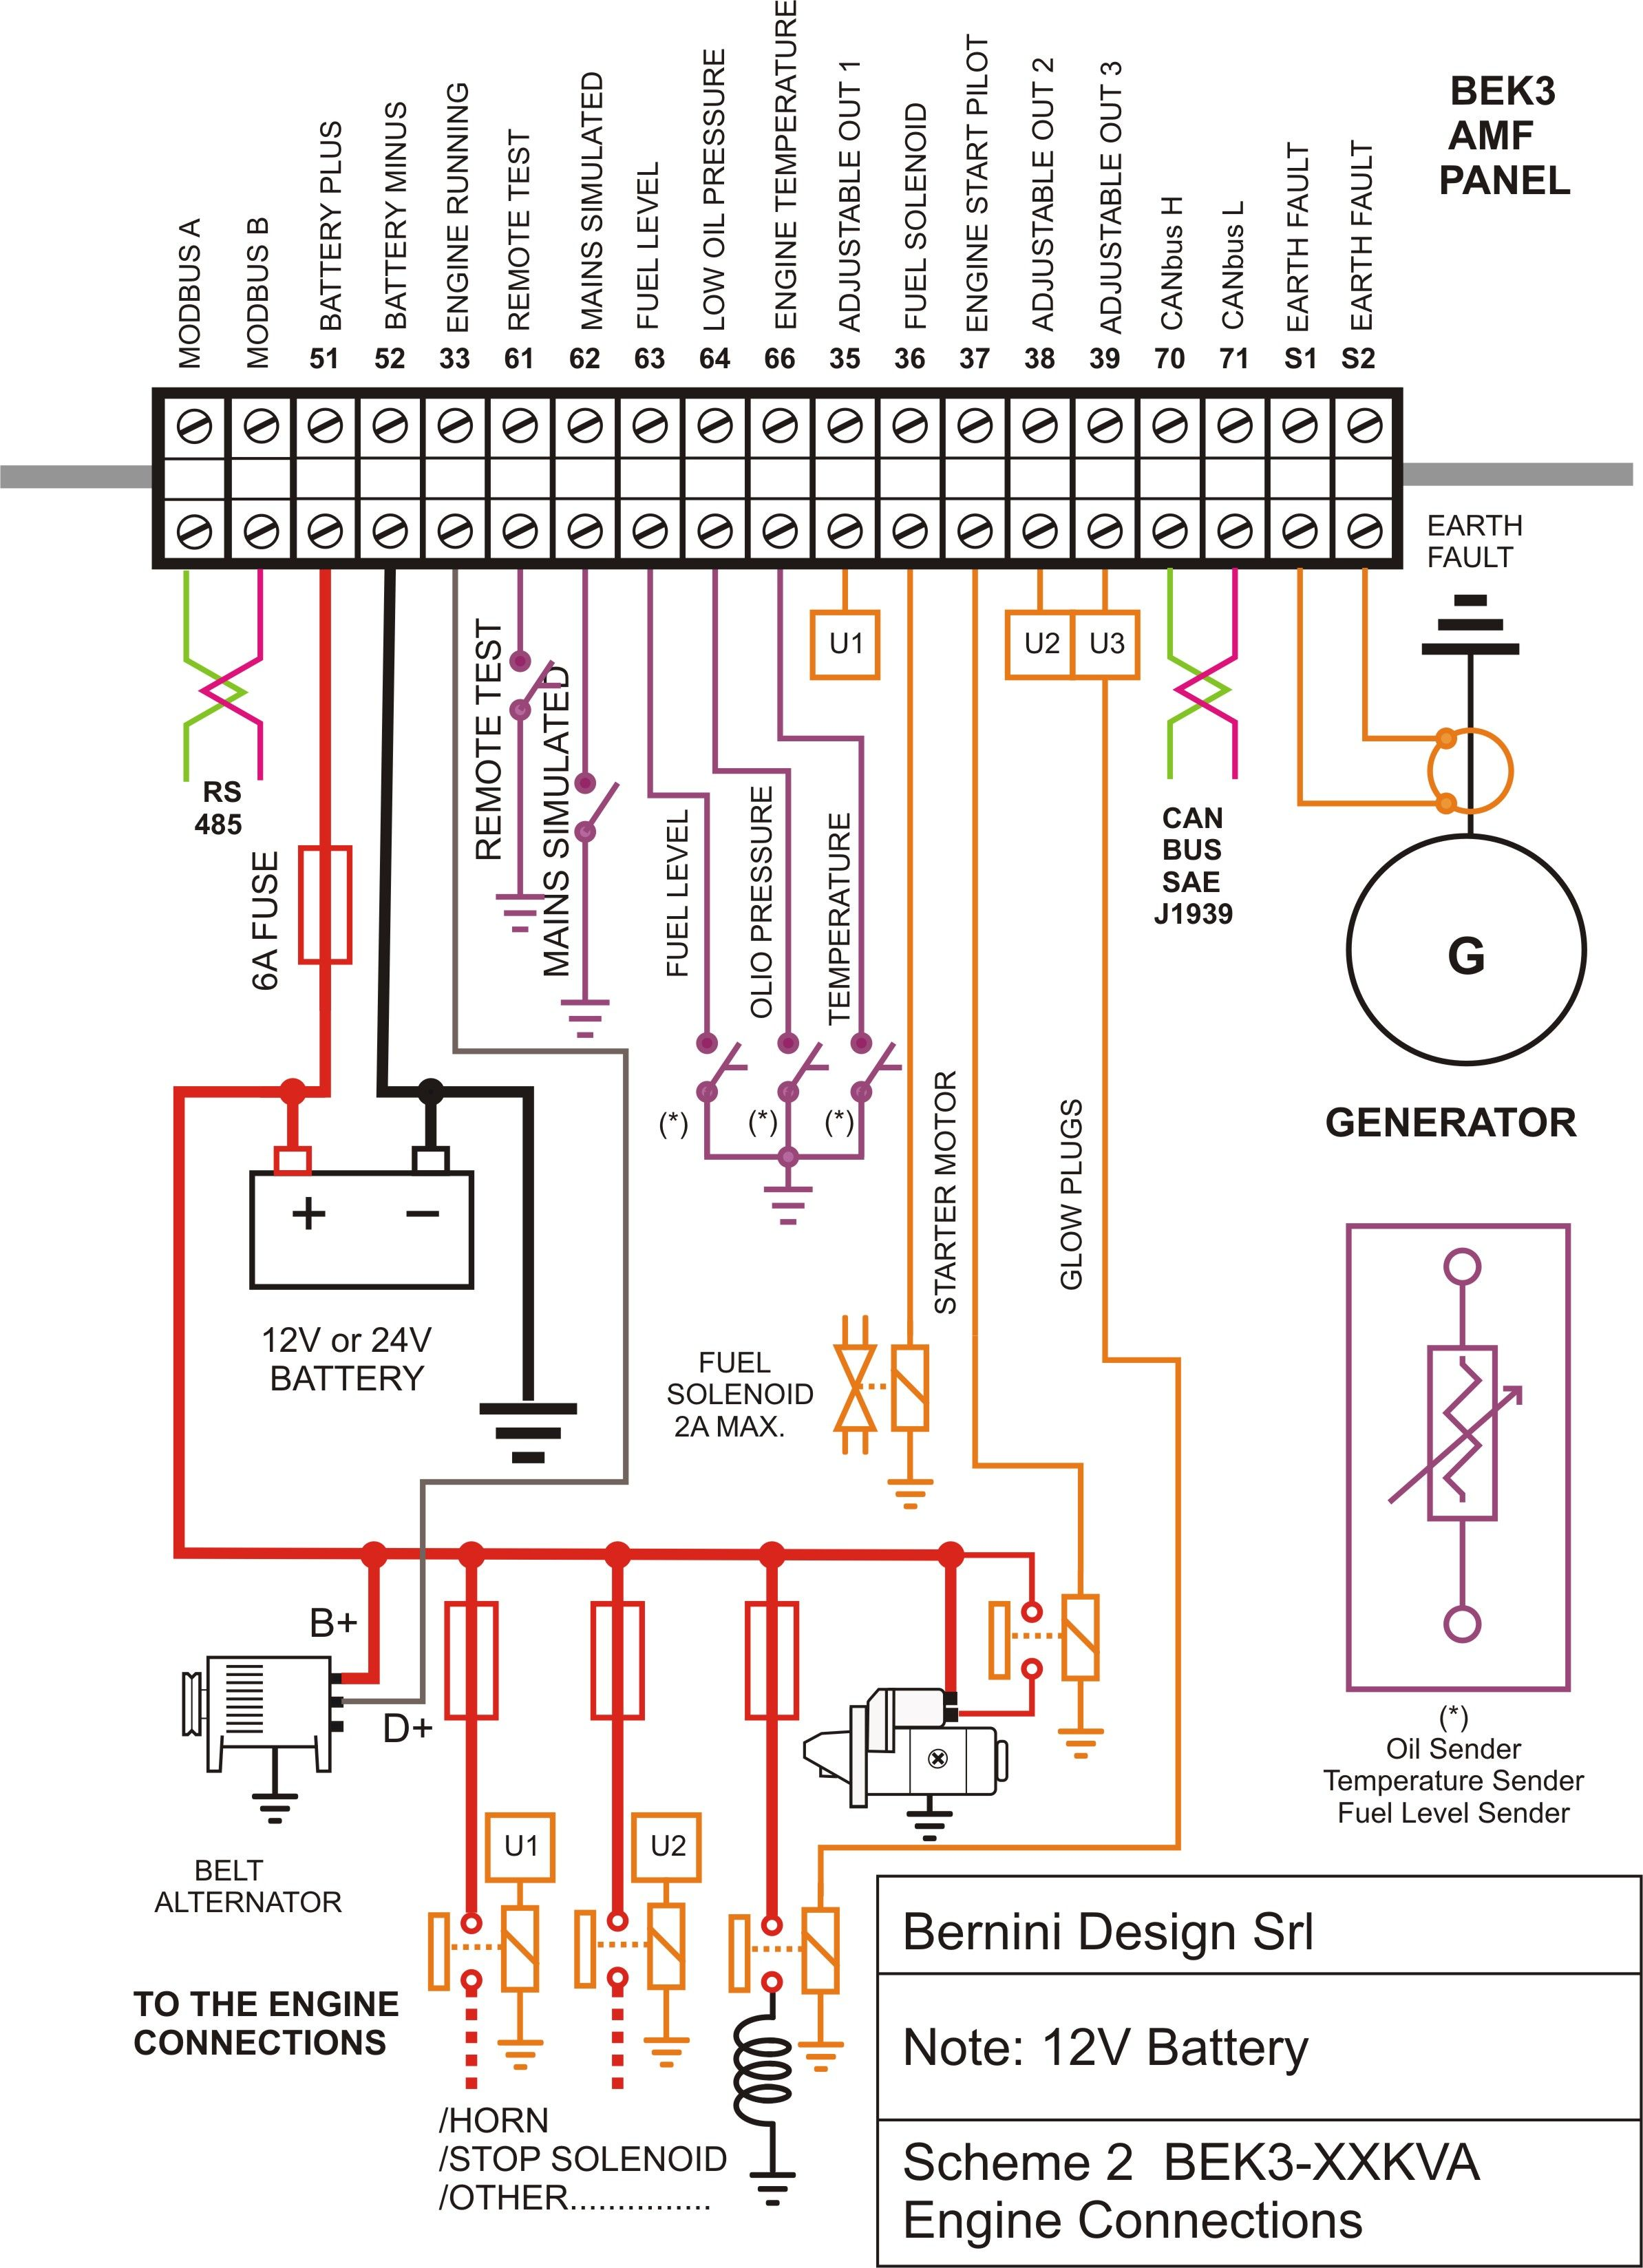 diesel generator control panel wiring diagram engine connections Low Voltage Wiring Diagrams